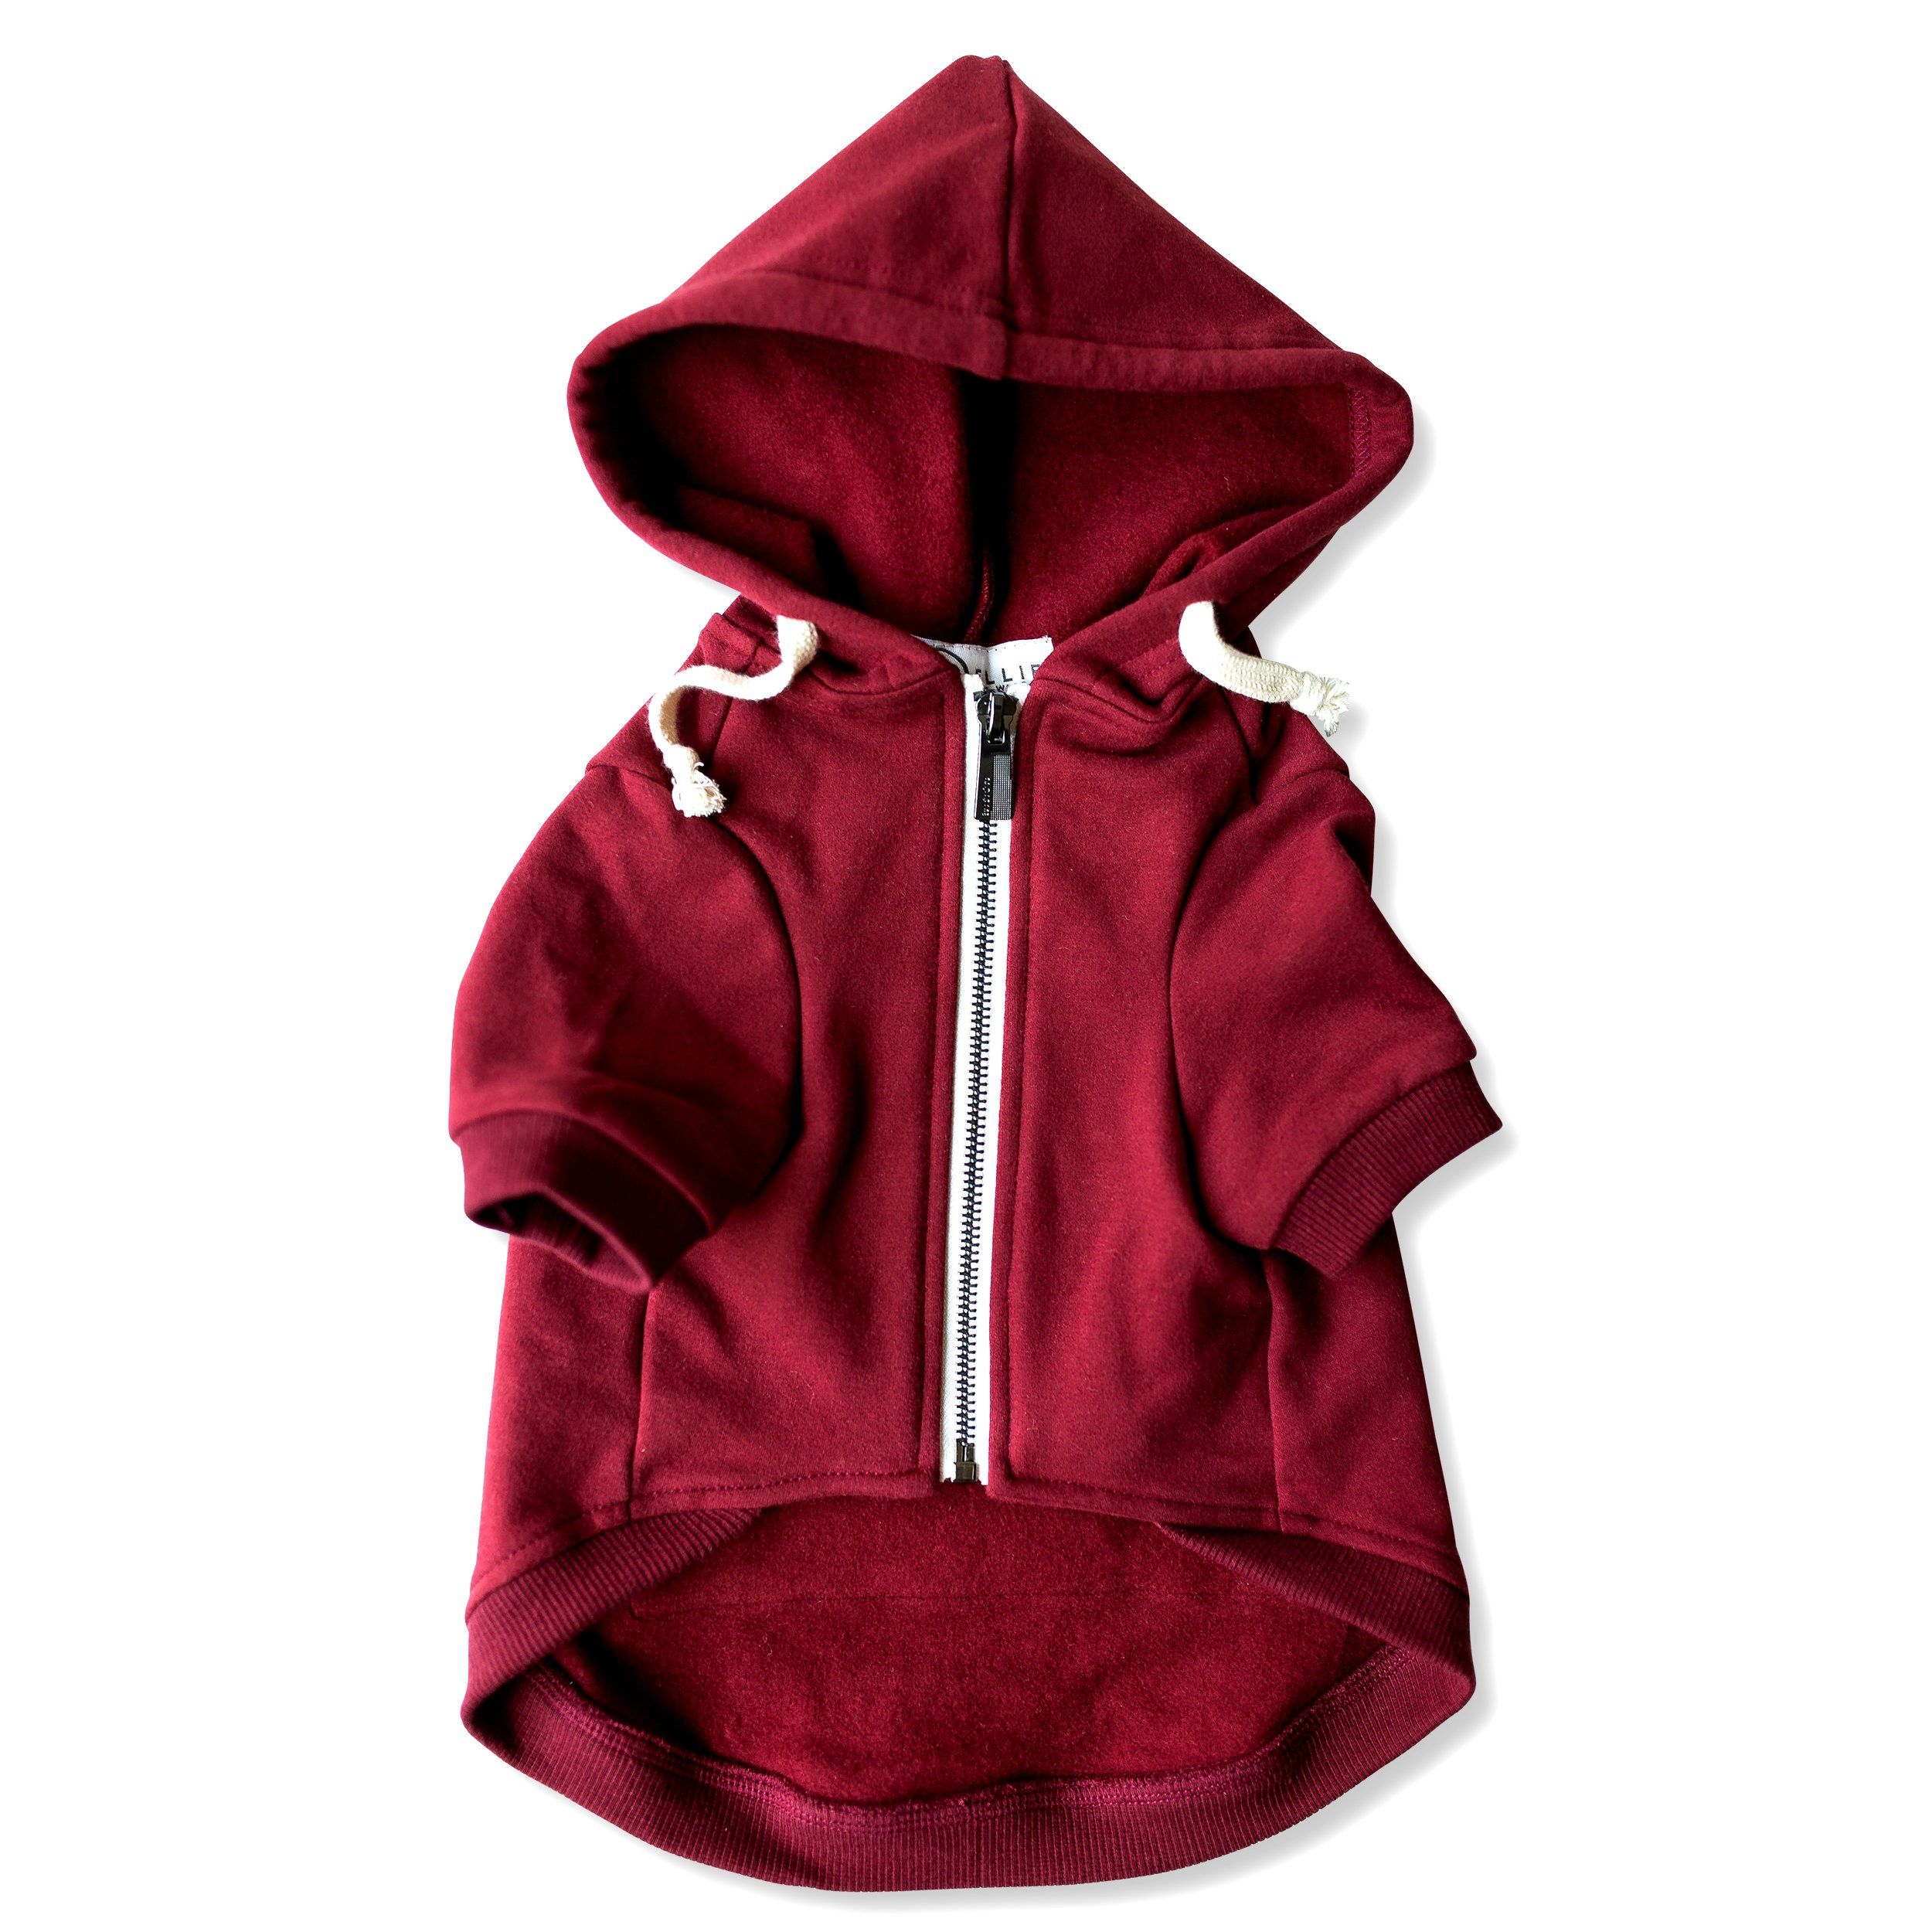 Adventure Zip Up Maroon Red Dog Hoodie with Hook & Loop Pockets and Adjustable Drawstring Hood - Available in Extra Small to Extra Large. Comfortable & Versatile Dog Hoodies by Ellie (M)